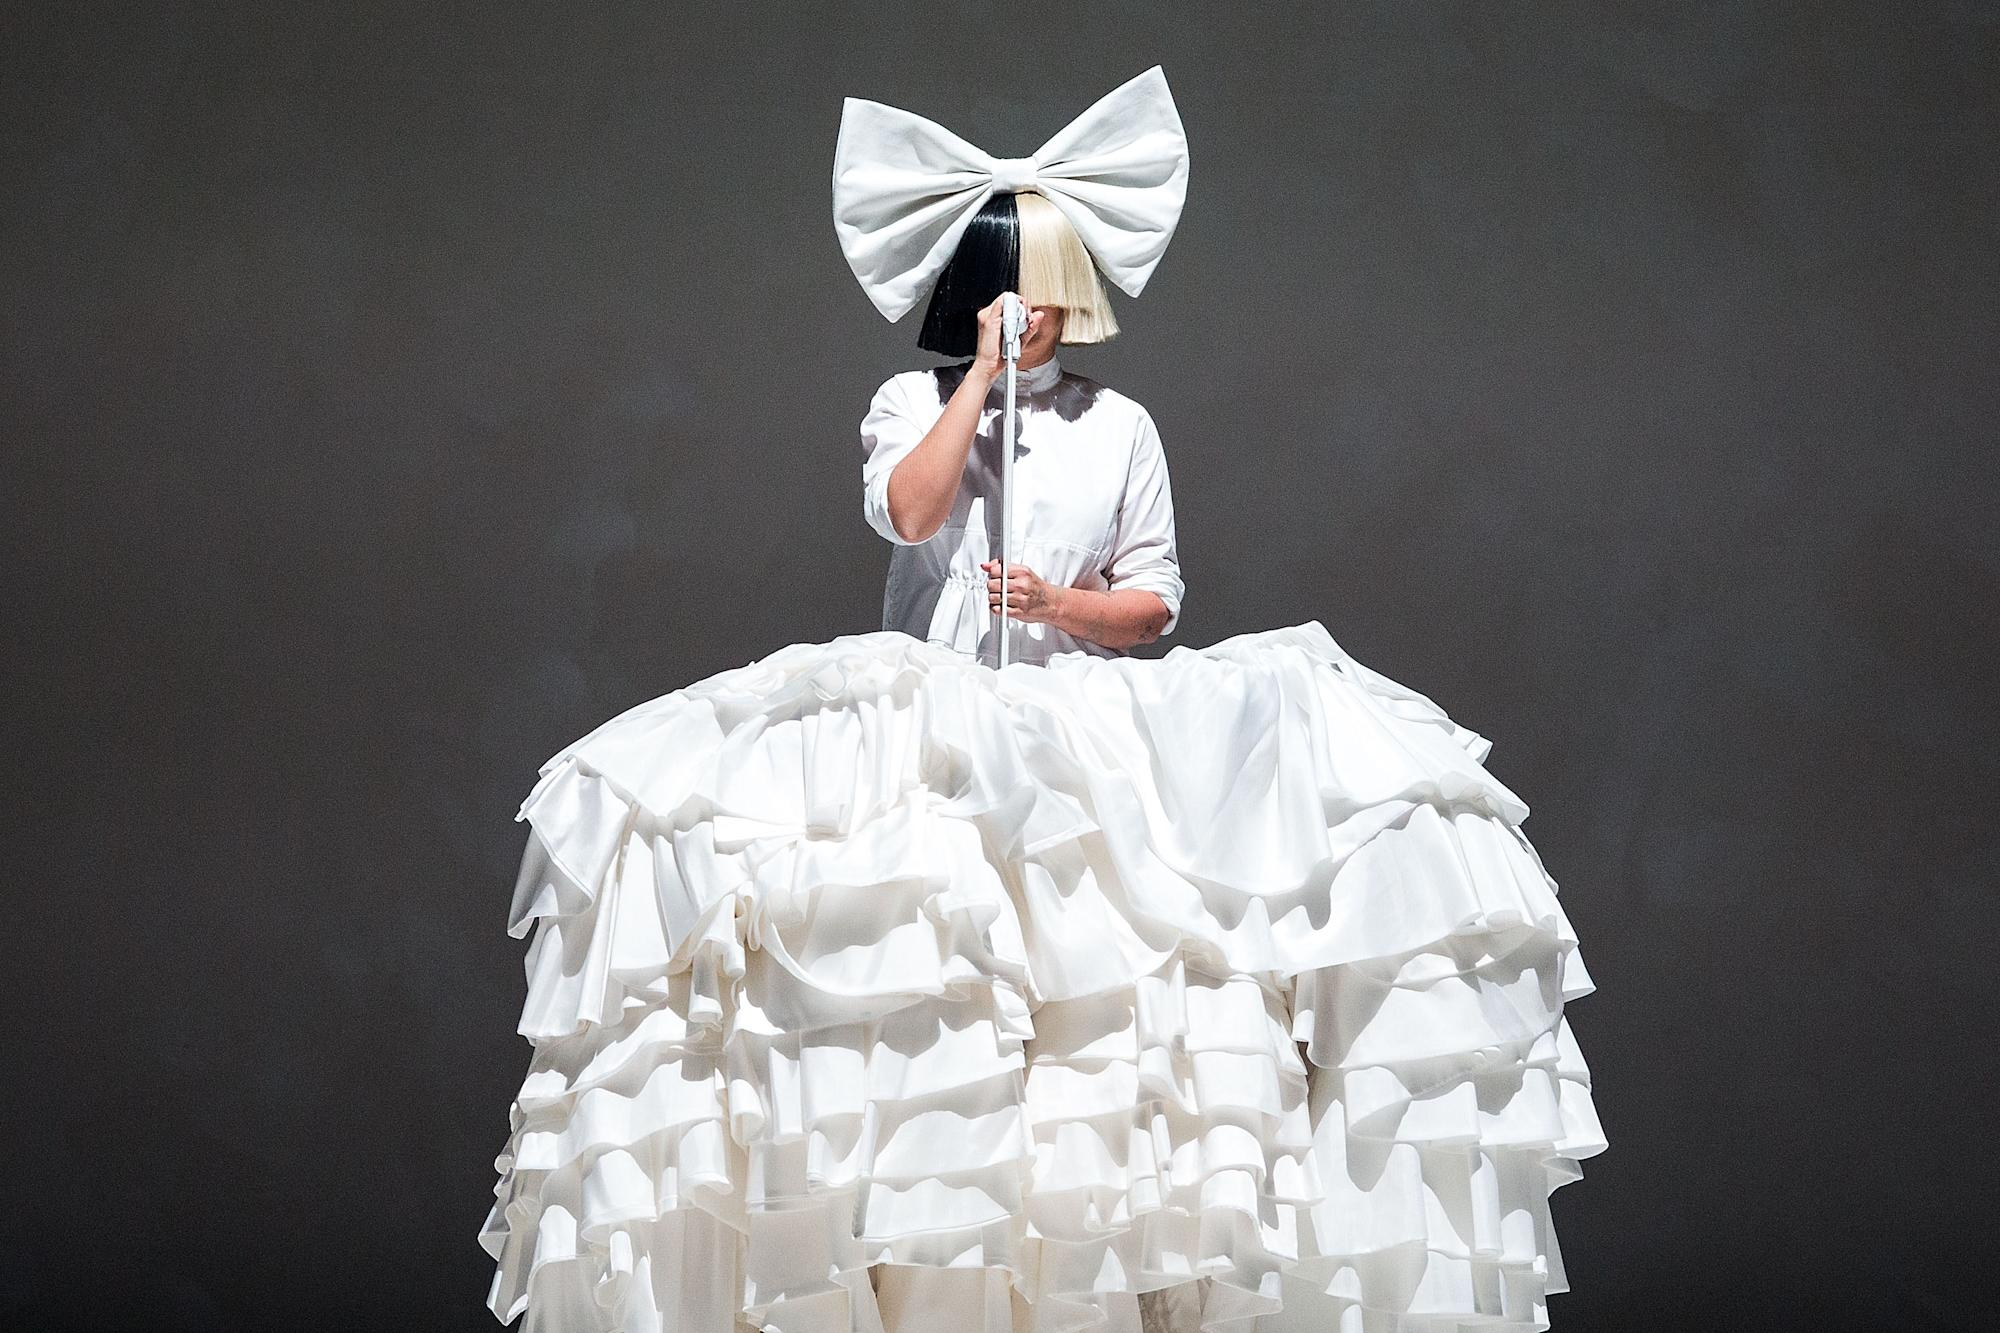 Sia faces backlash from autism community over new film, work with controversial group: 'This is really disappointing'